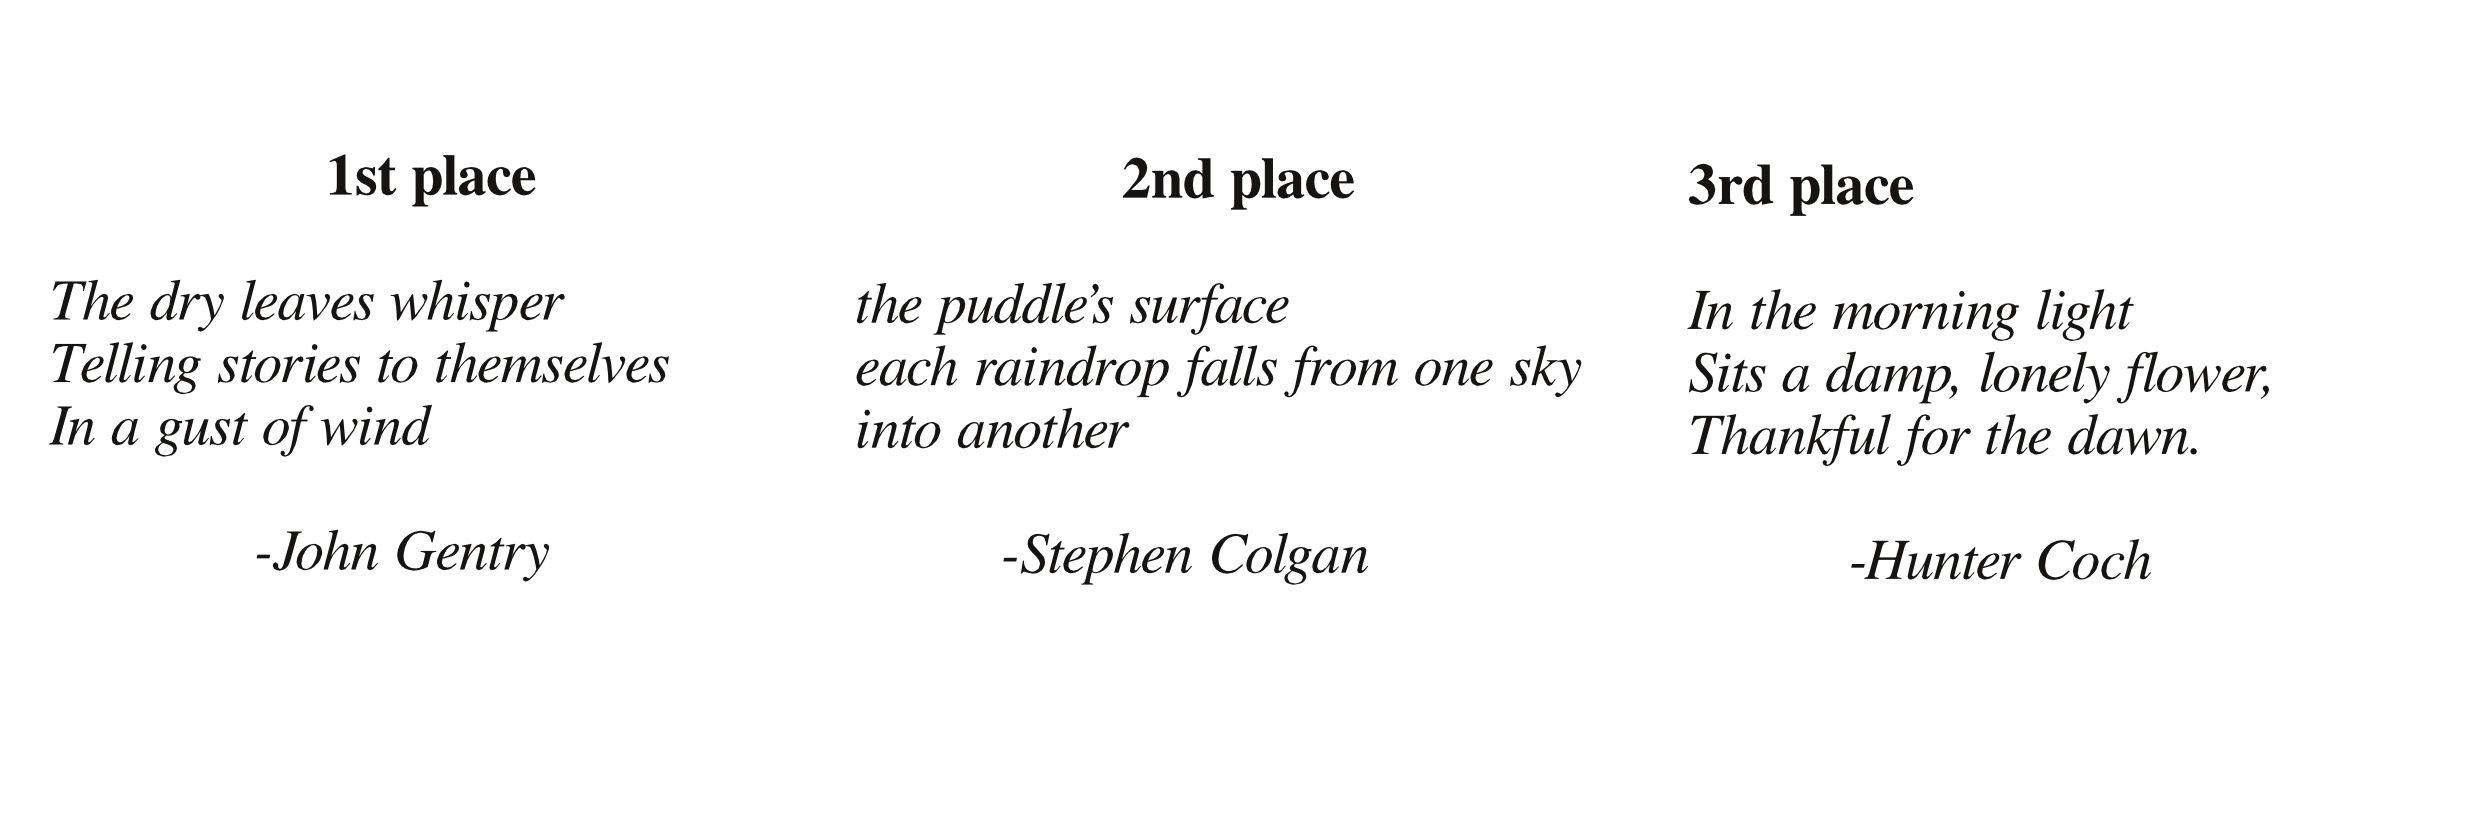 example of haiku about nature 5 7 5 tagalog